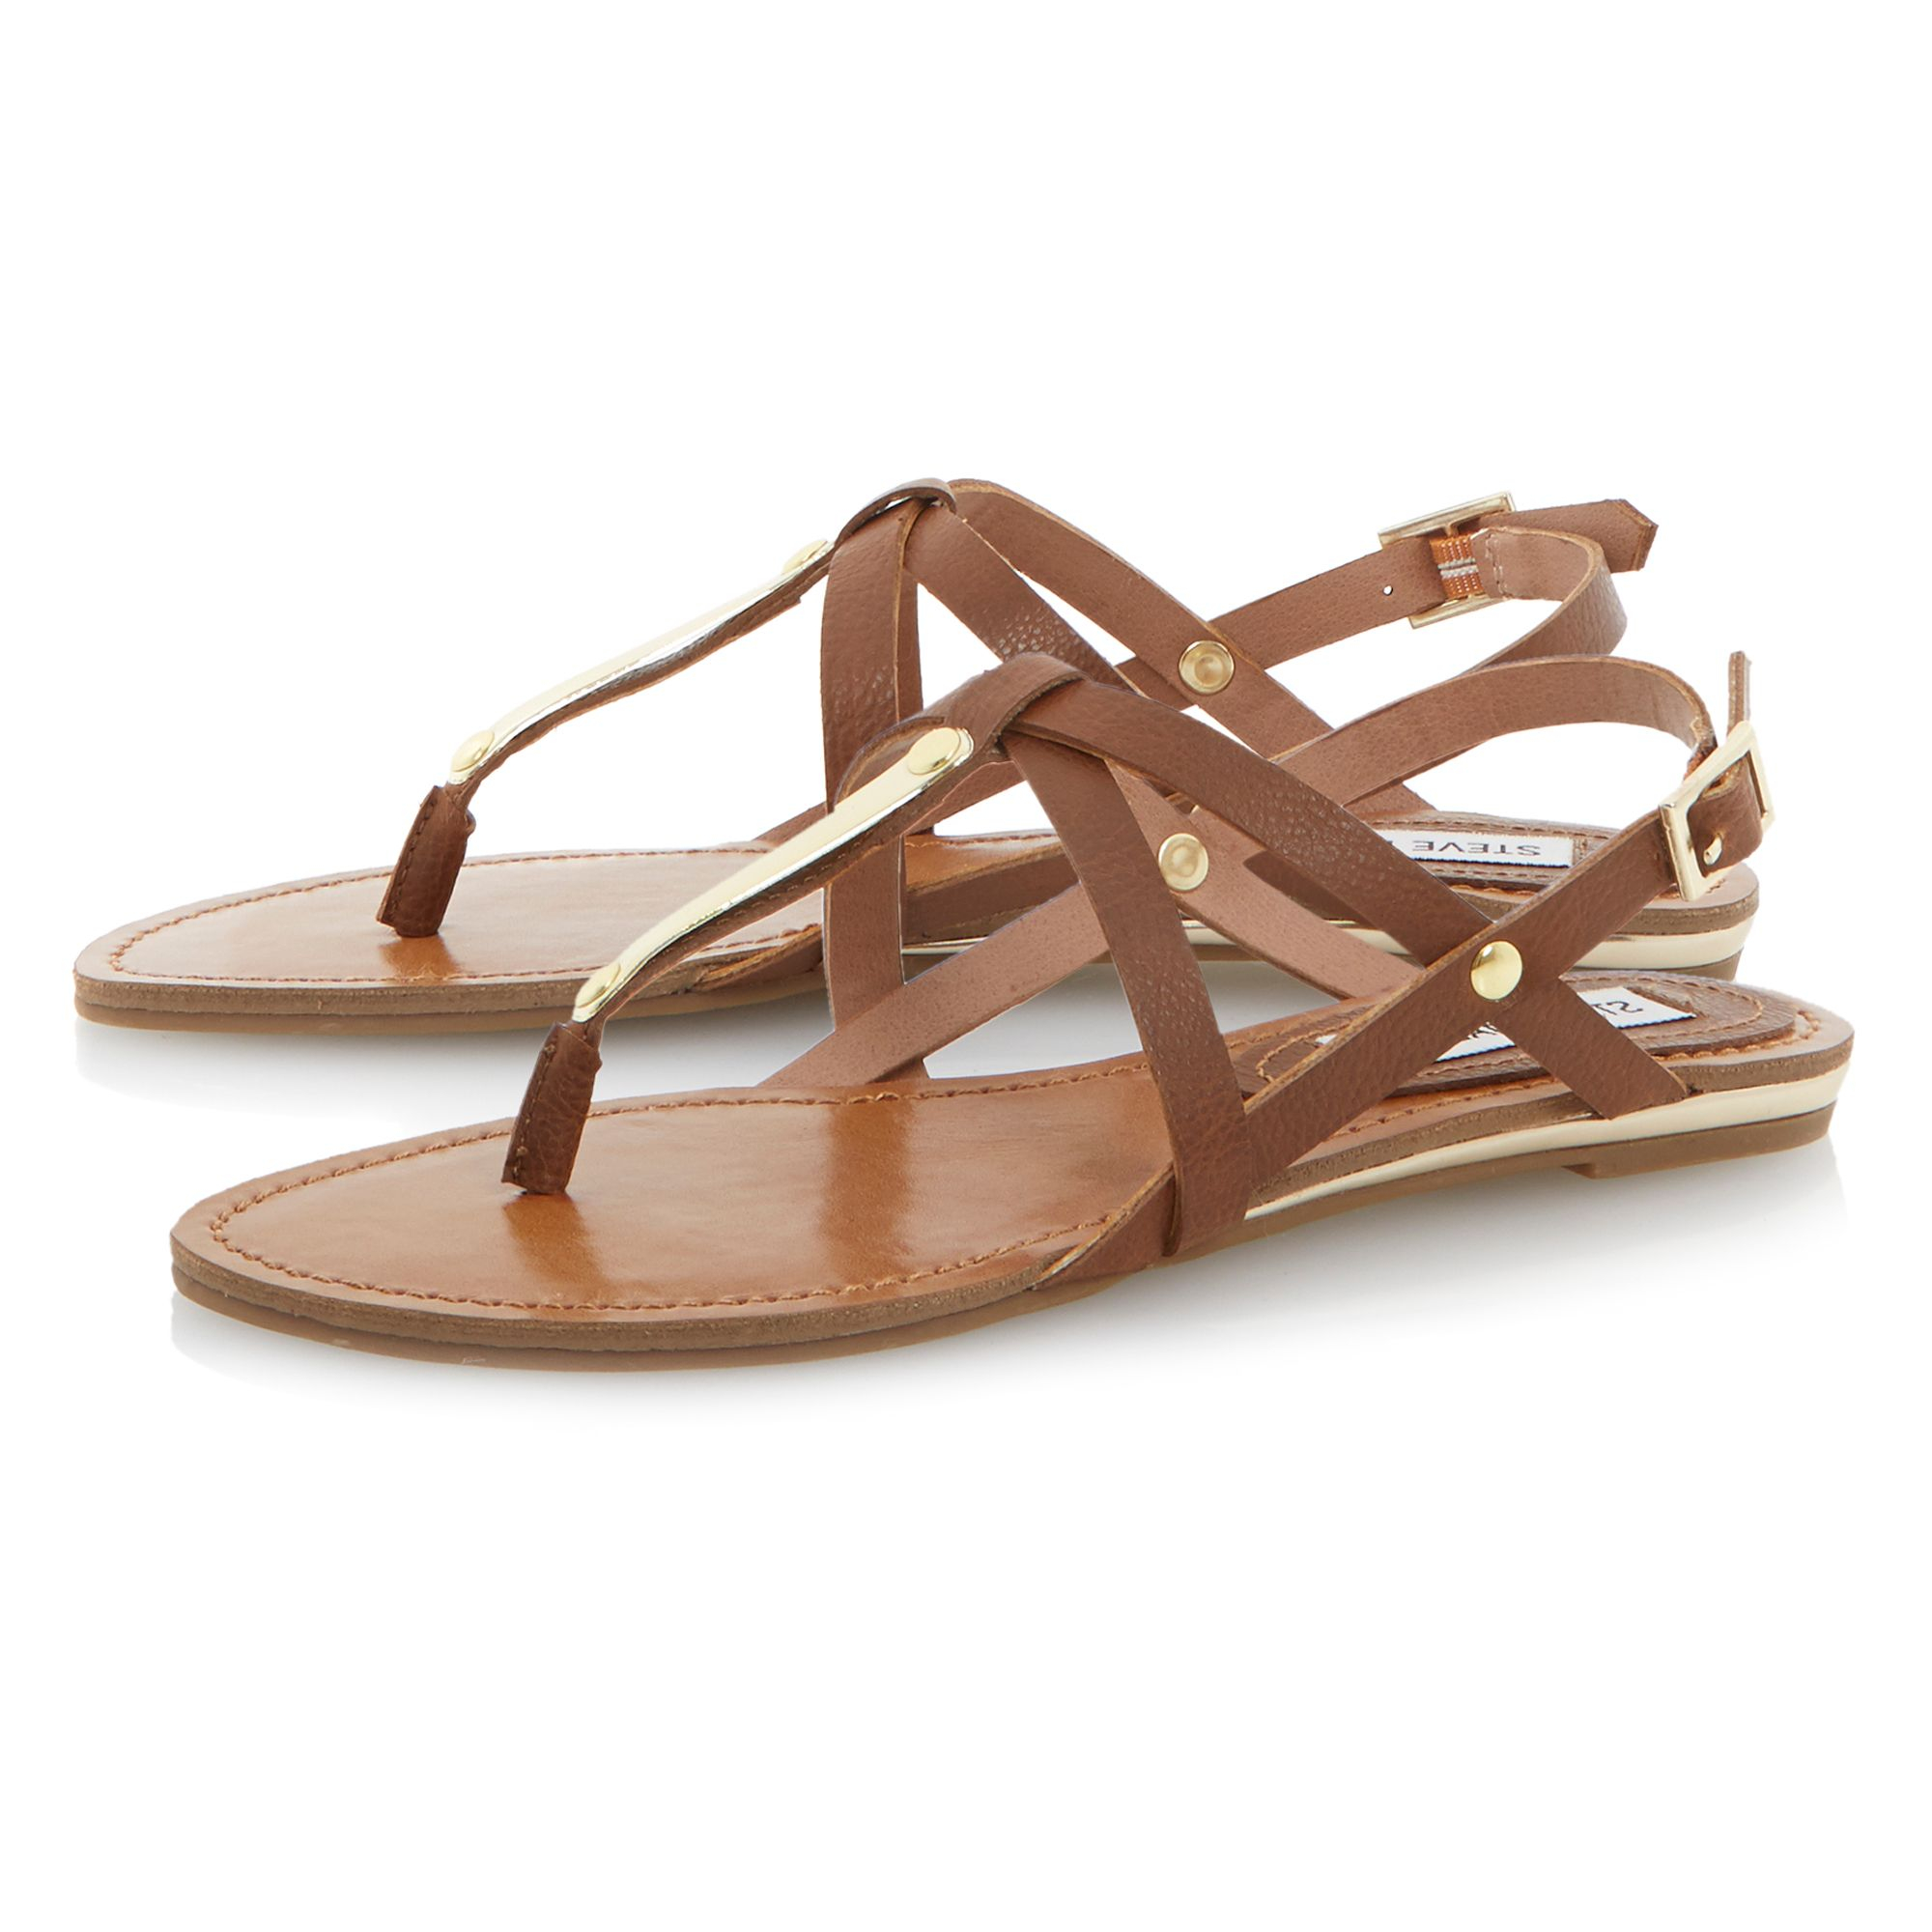 Steve madden junyaa flat sandals in brown lyst for Steve madden home designs